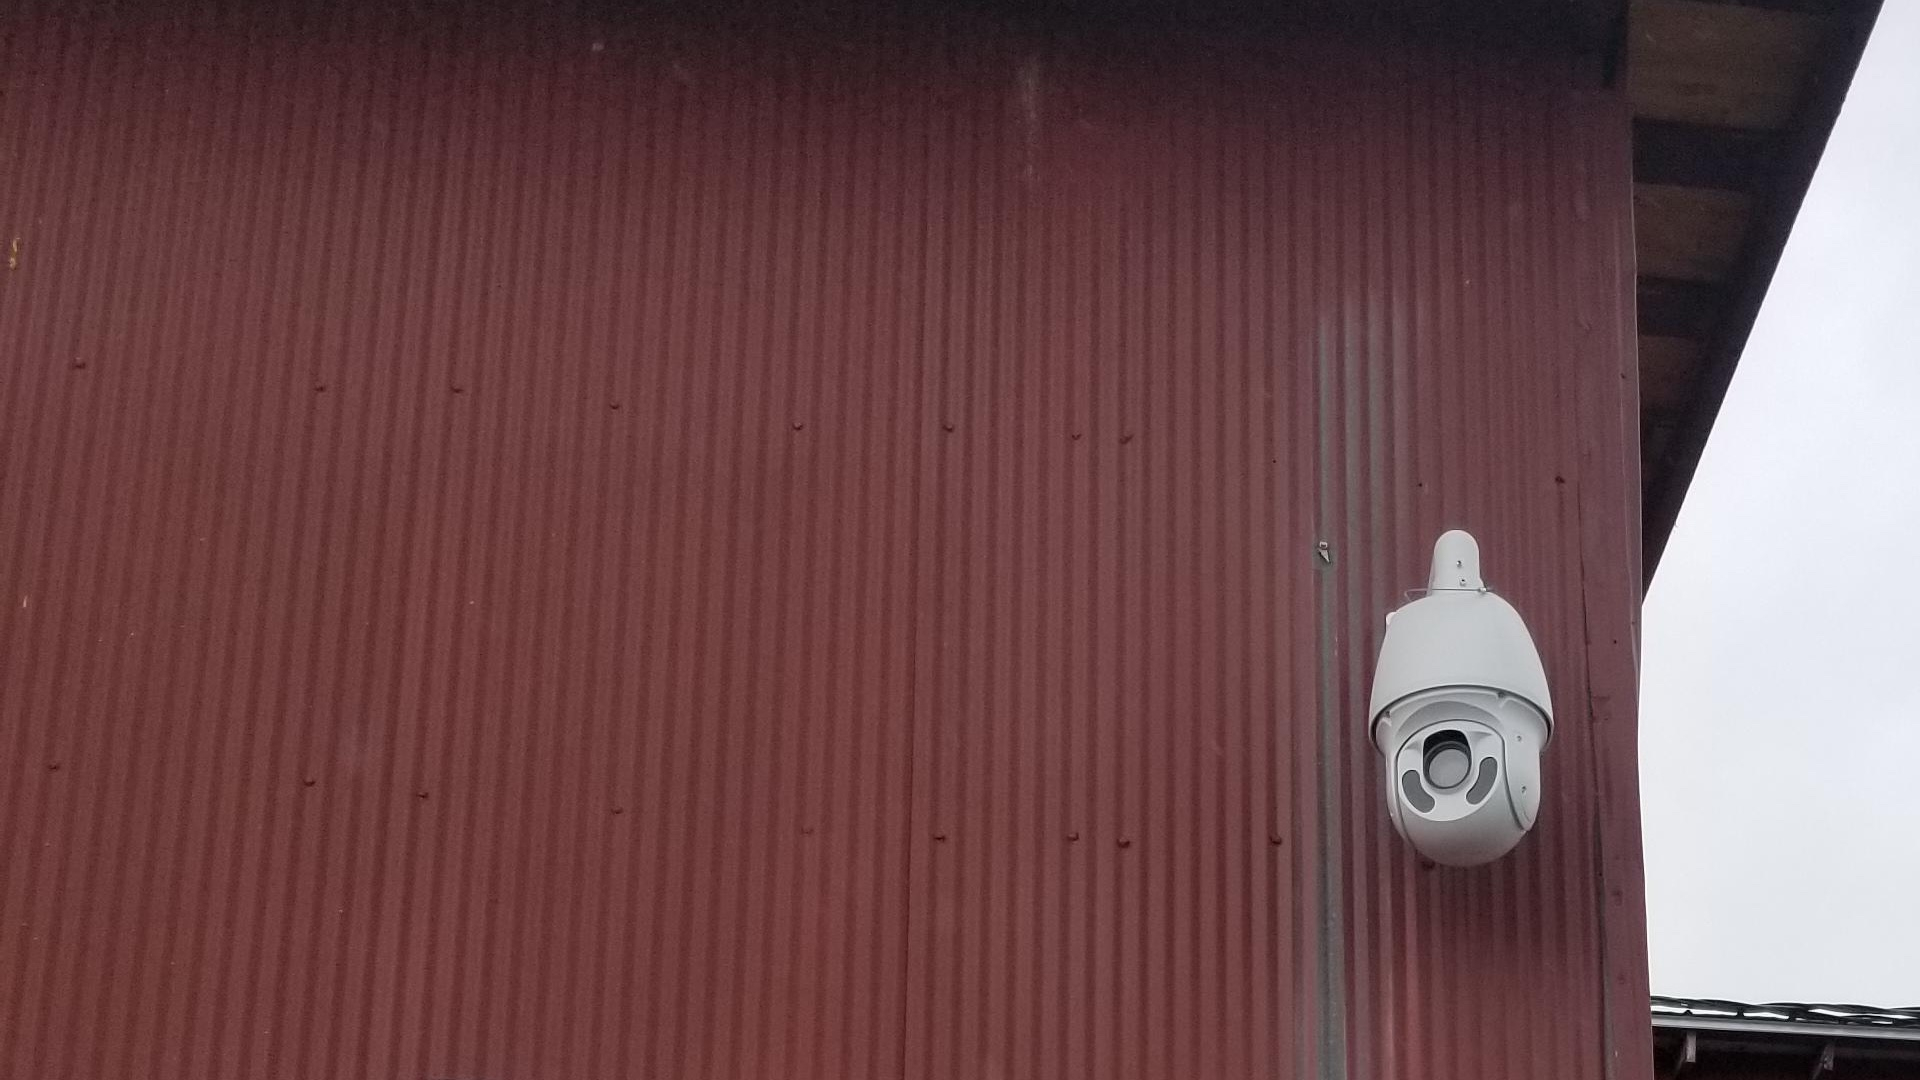 The Lookout 2.0 - 26ZV - 2MP (1080P) IP PTZ Camera with 30x Optical Zoom